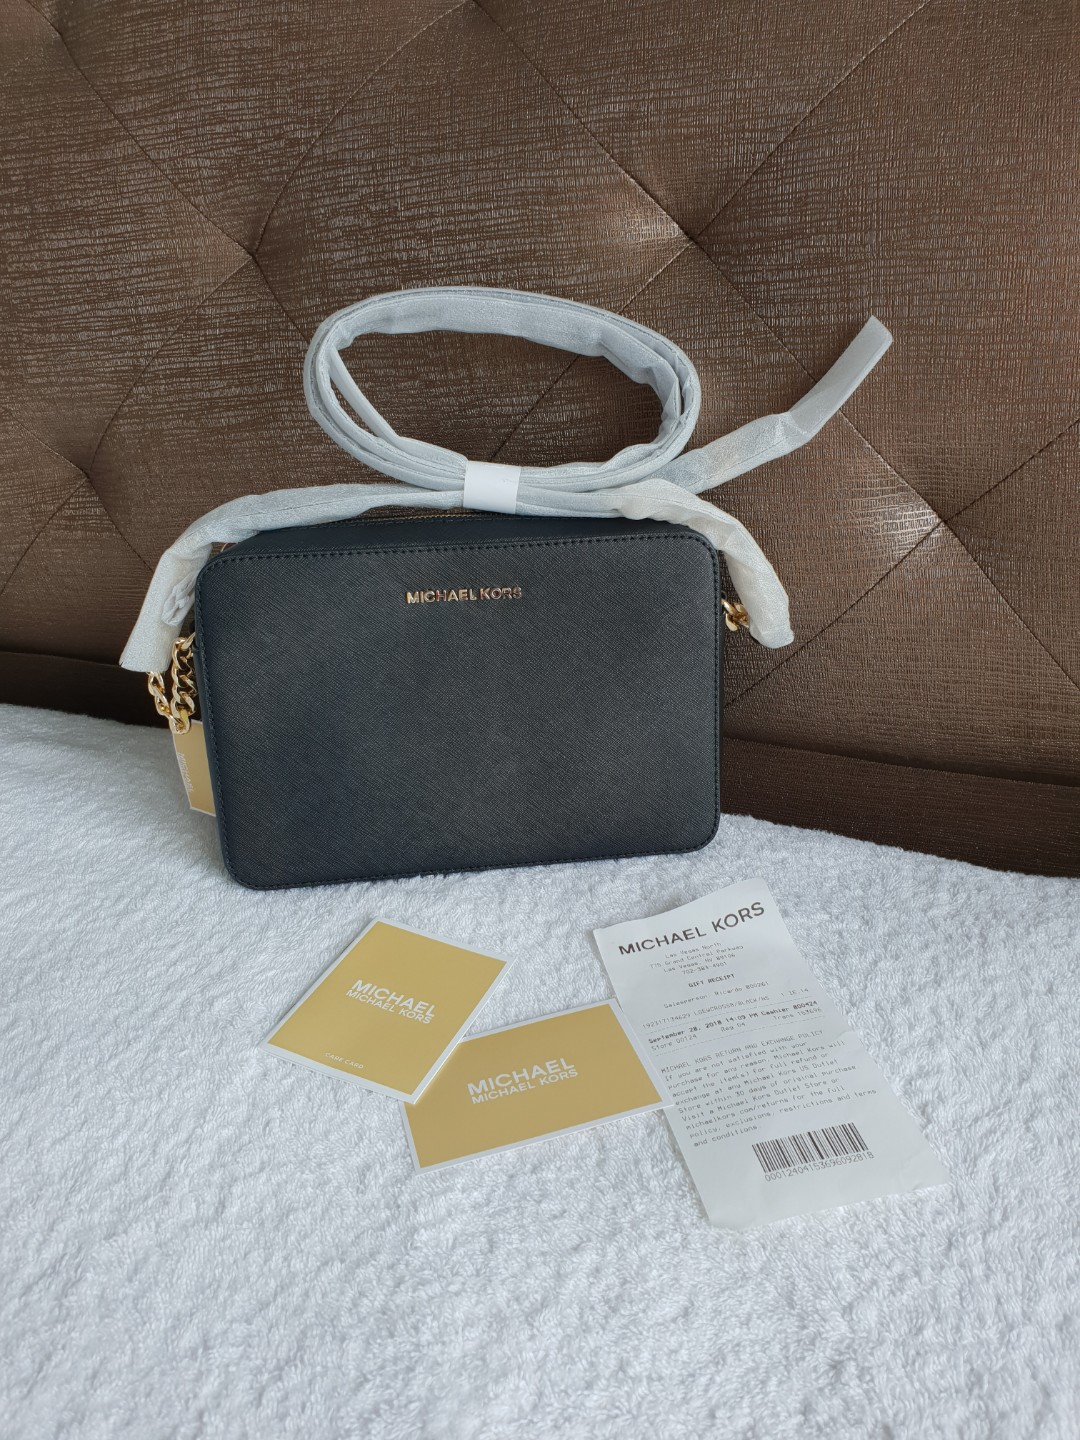 5fd055be04f4 Michael Kors Crossbody, Luxury, Bags & Wallets, Handbags on Carousell